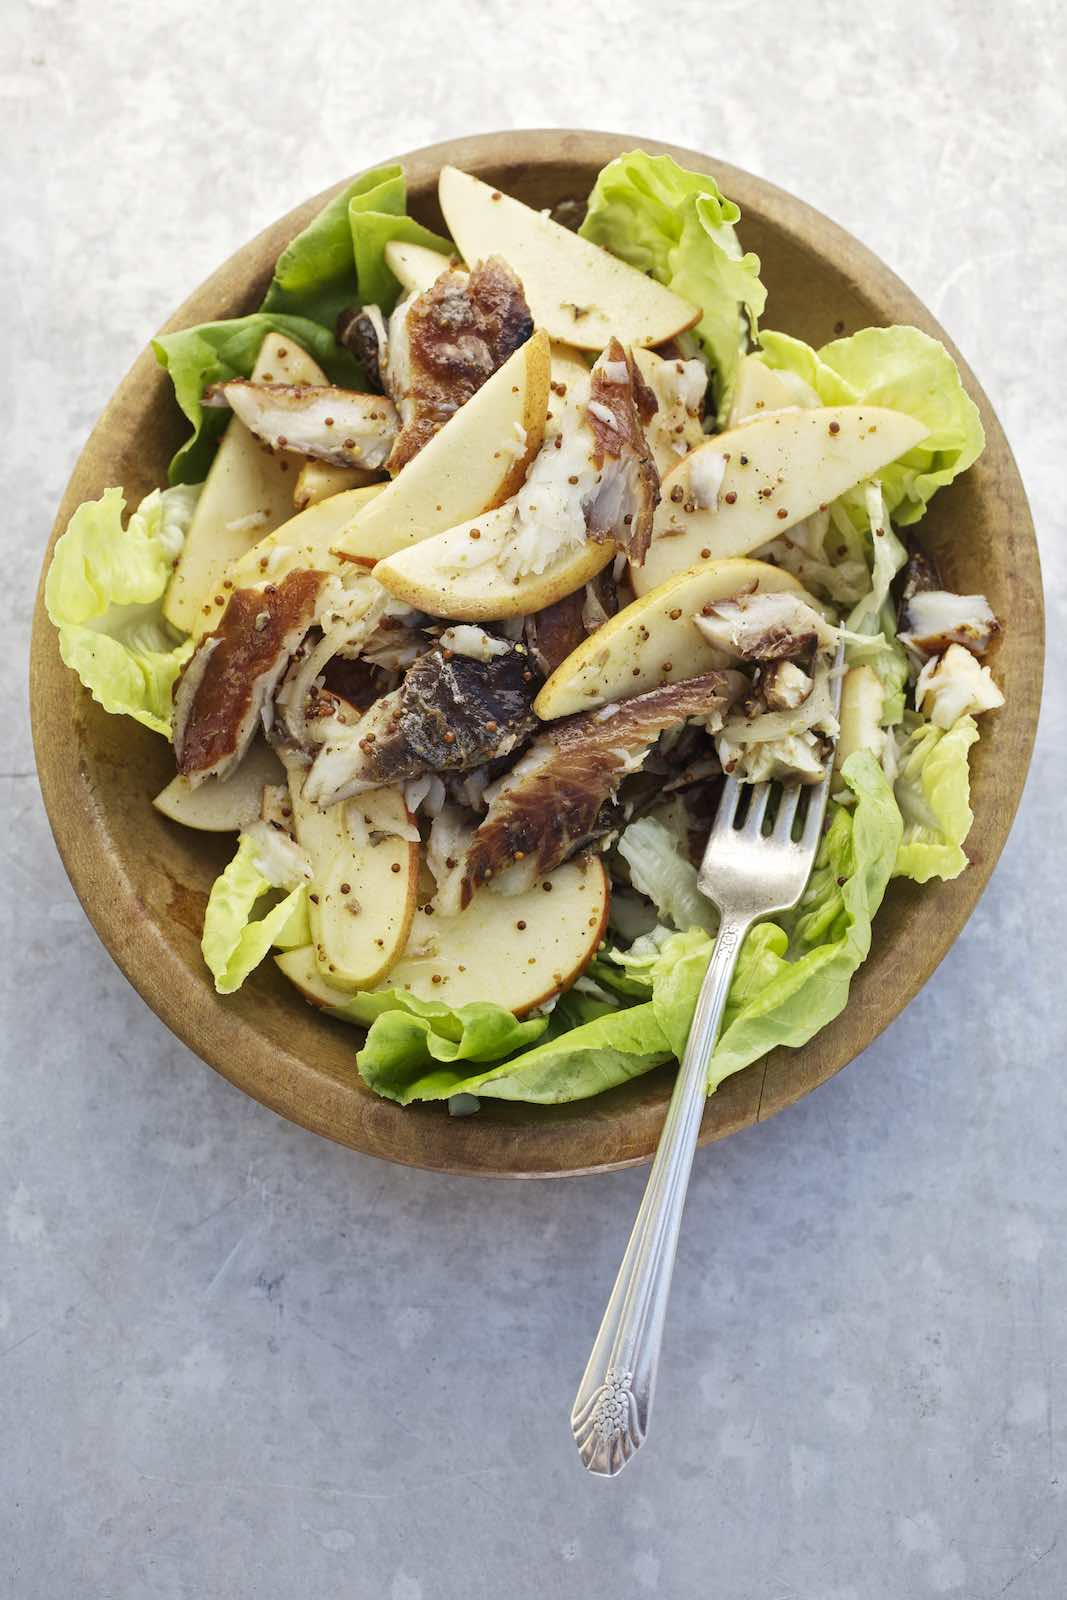 Jody Horton Photography - Salad topped with sliced pear and grilled fish.